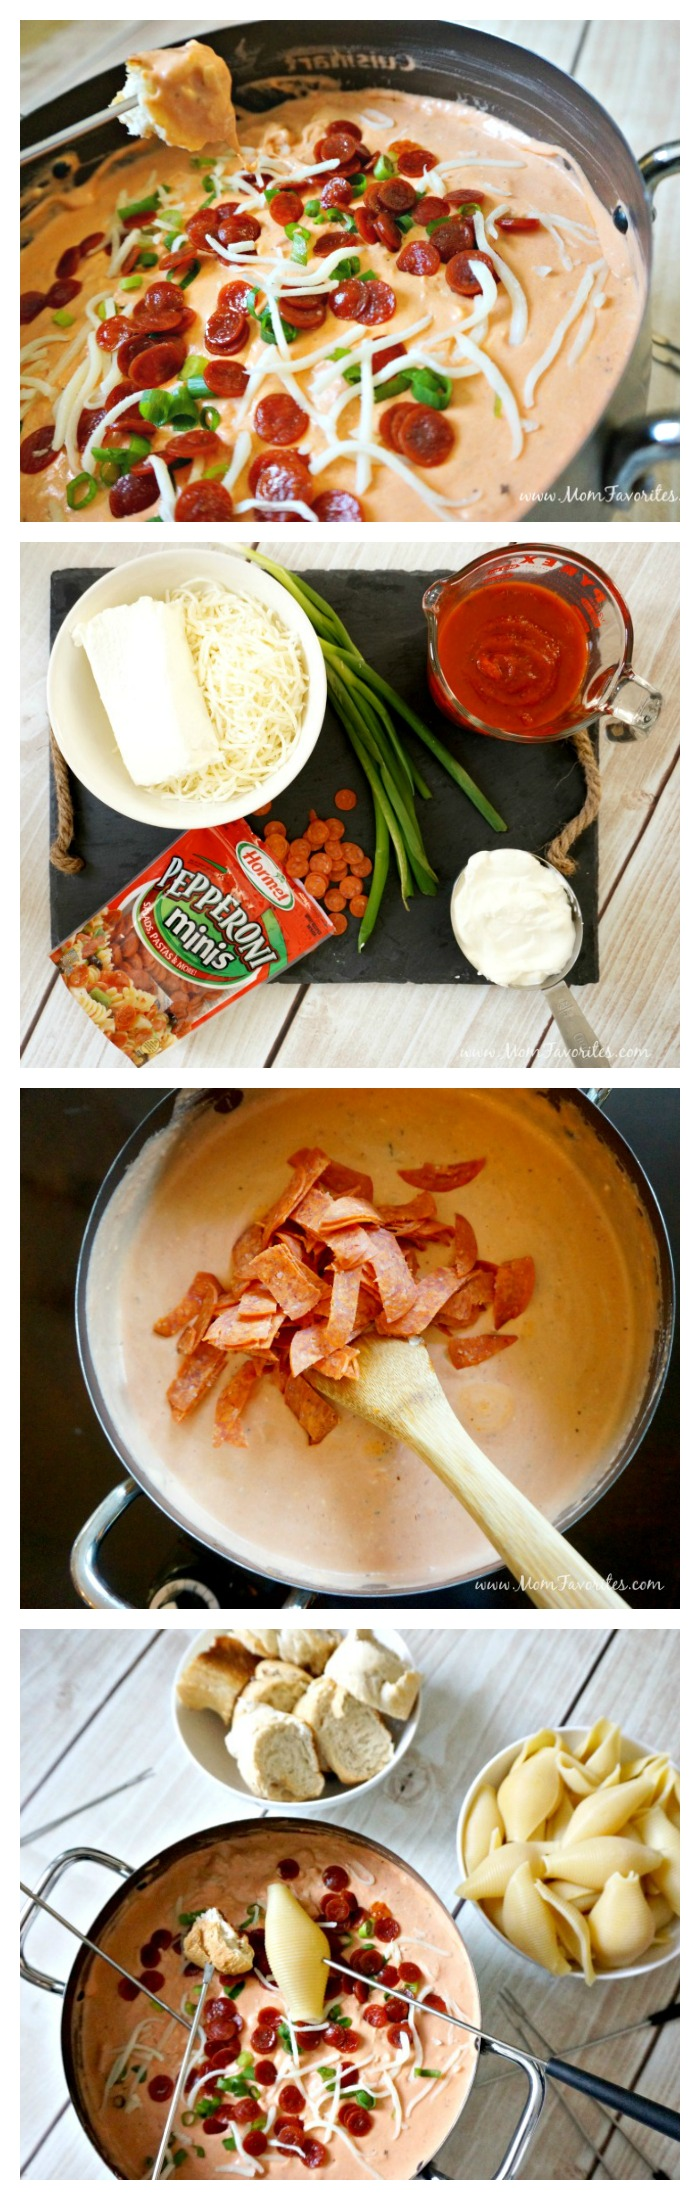 Pizza Fondue with Noodles and Bread for dipping! A new family friendly recipe for holiday entertaining featuring pepperoni!